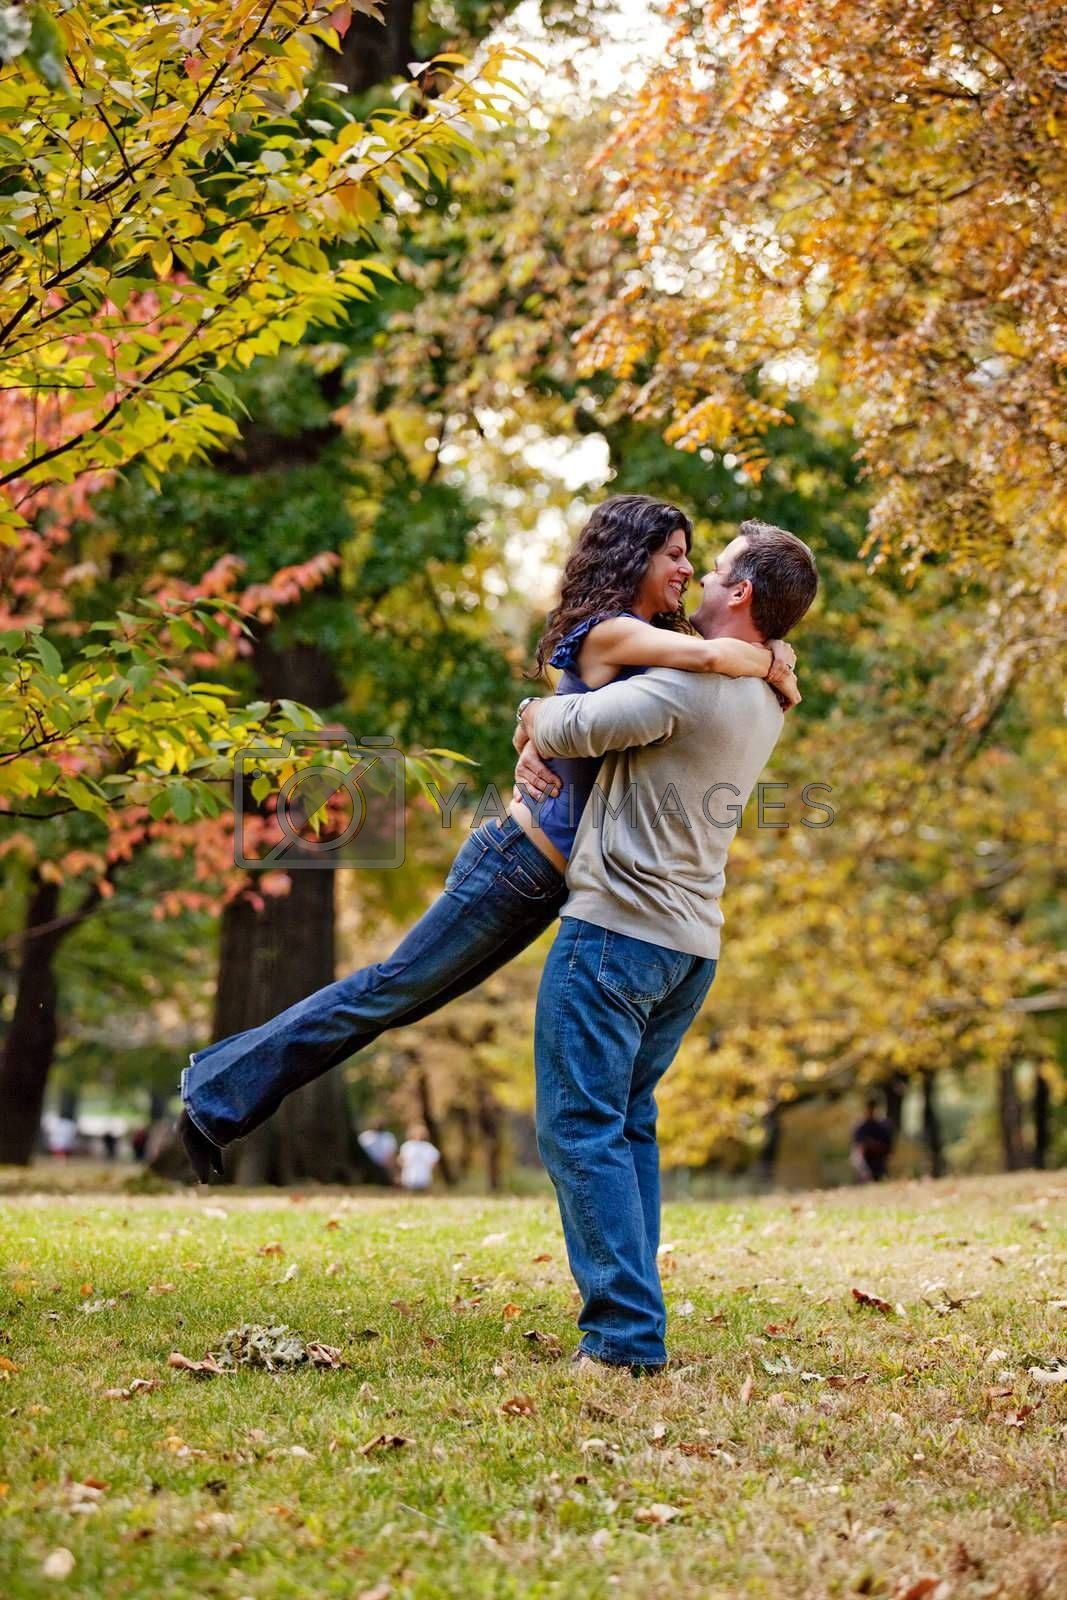 A man and woman hugging in a park